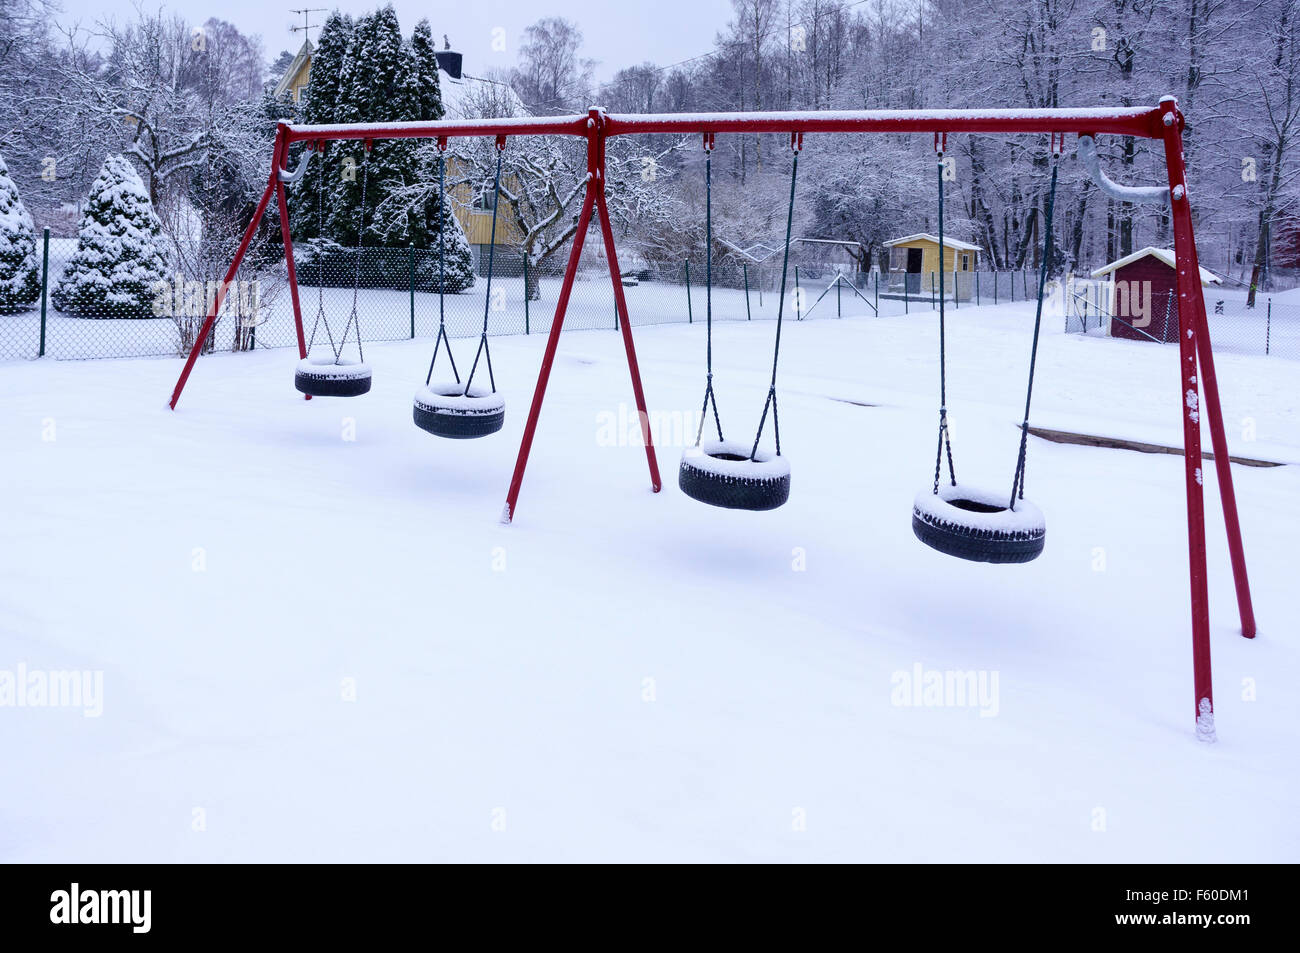 Kids outdoor playground swings covered in snow  Model Release: No.  Property Release: No. - Stock Image